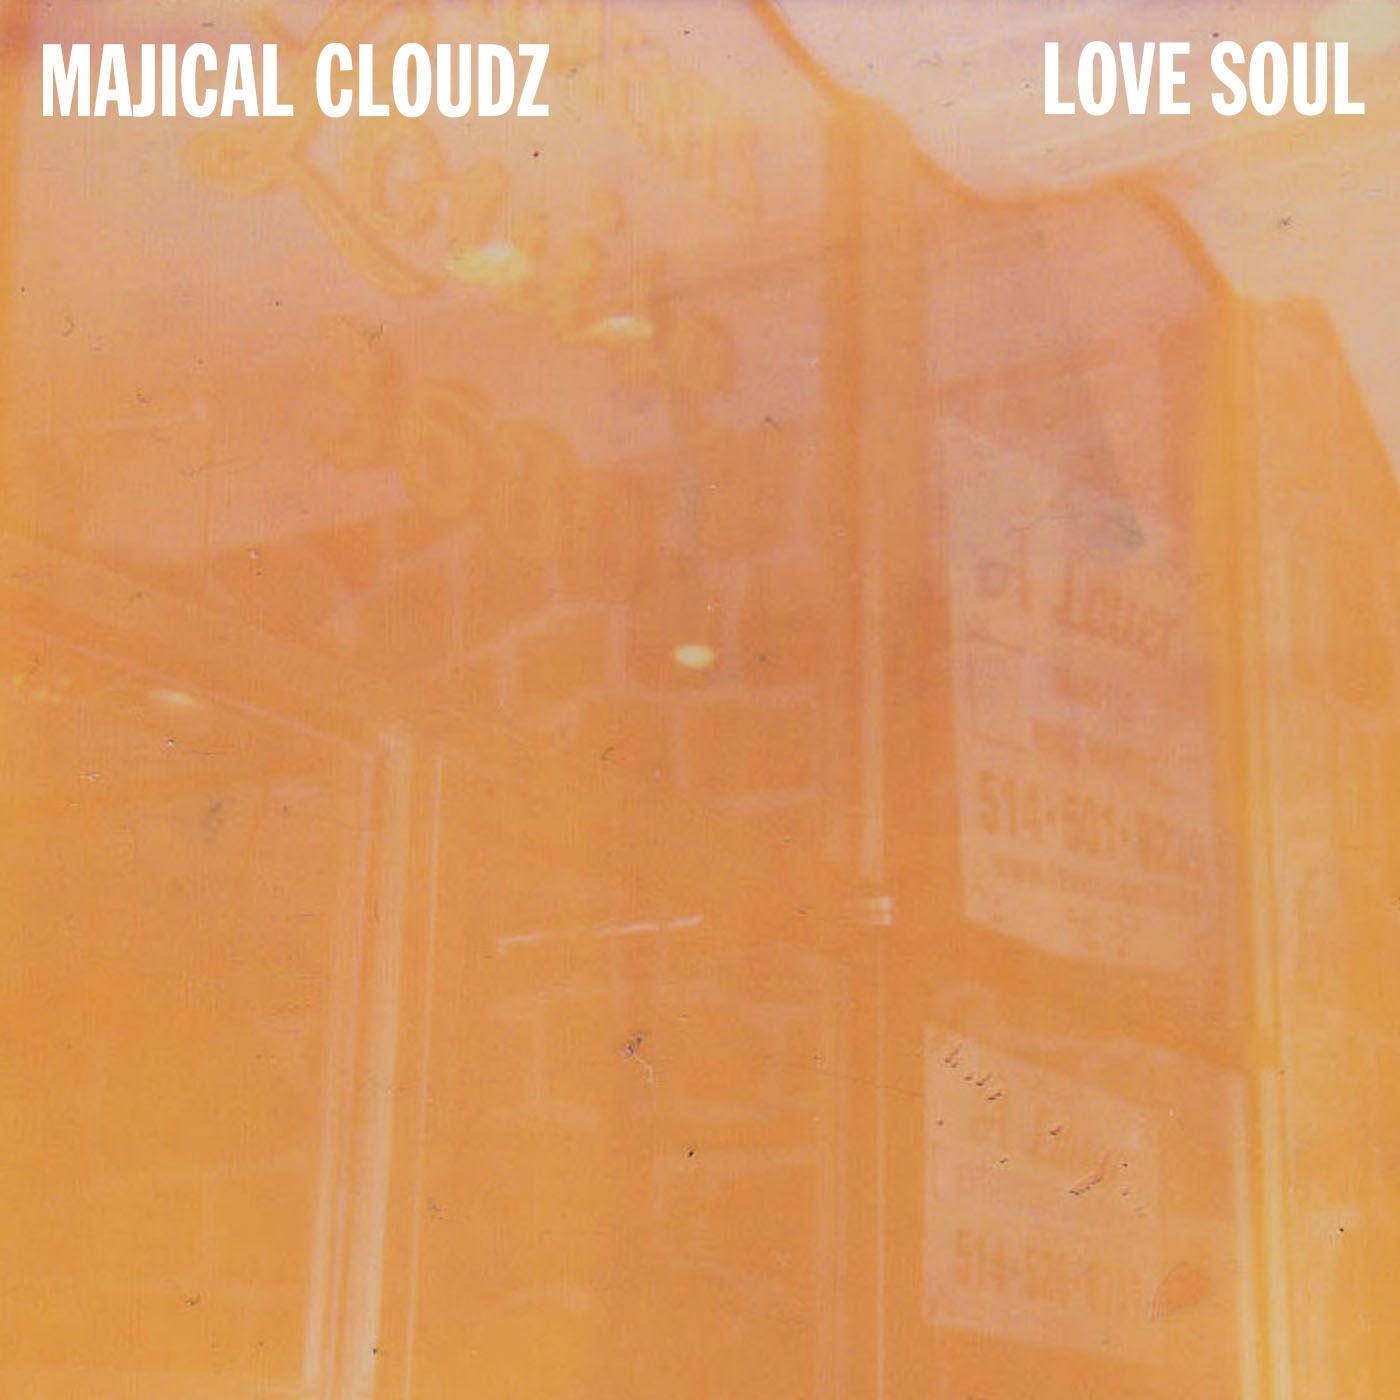 Majical Cloudz – Love Soul / Savage